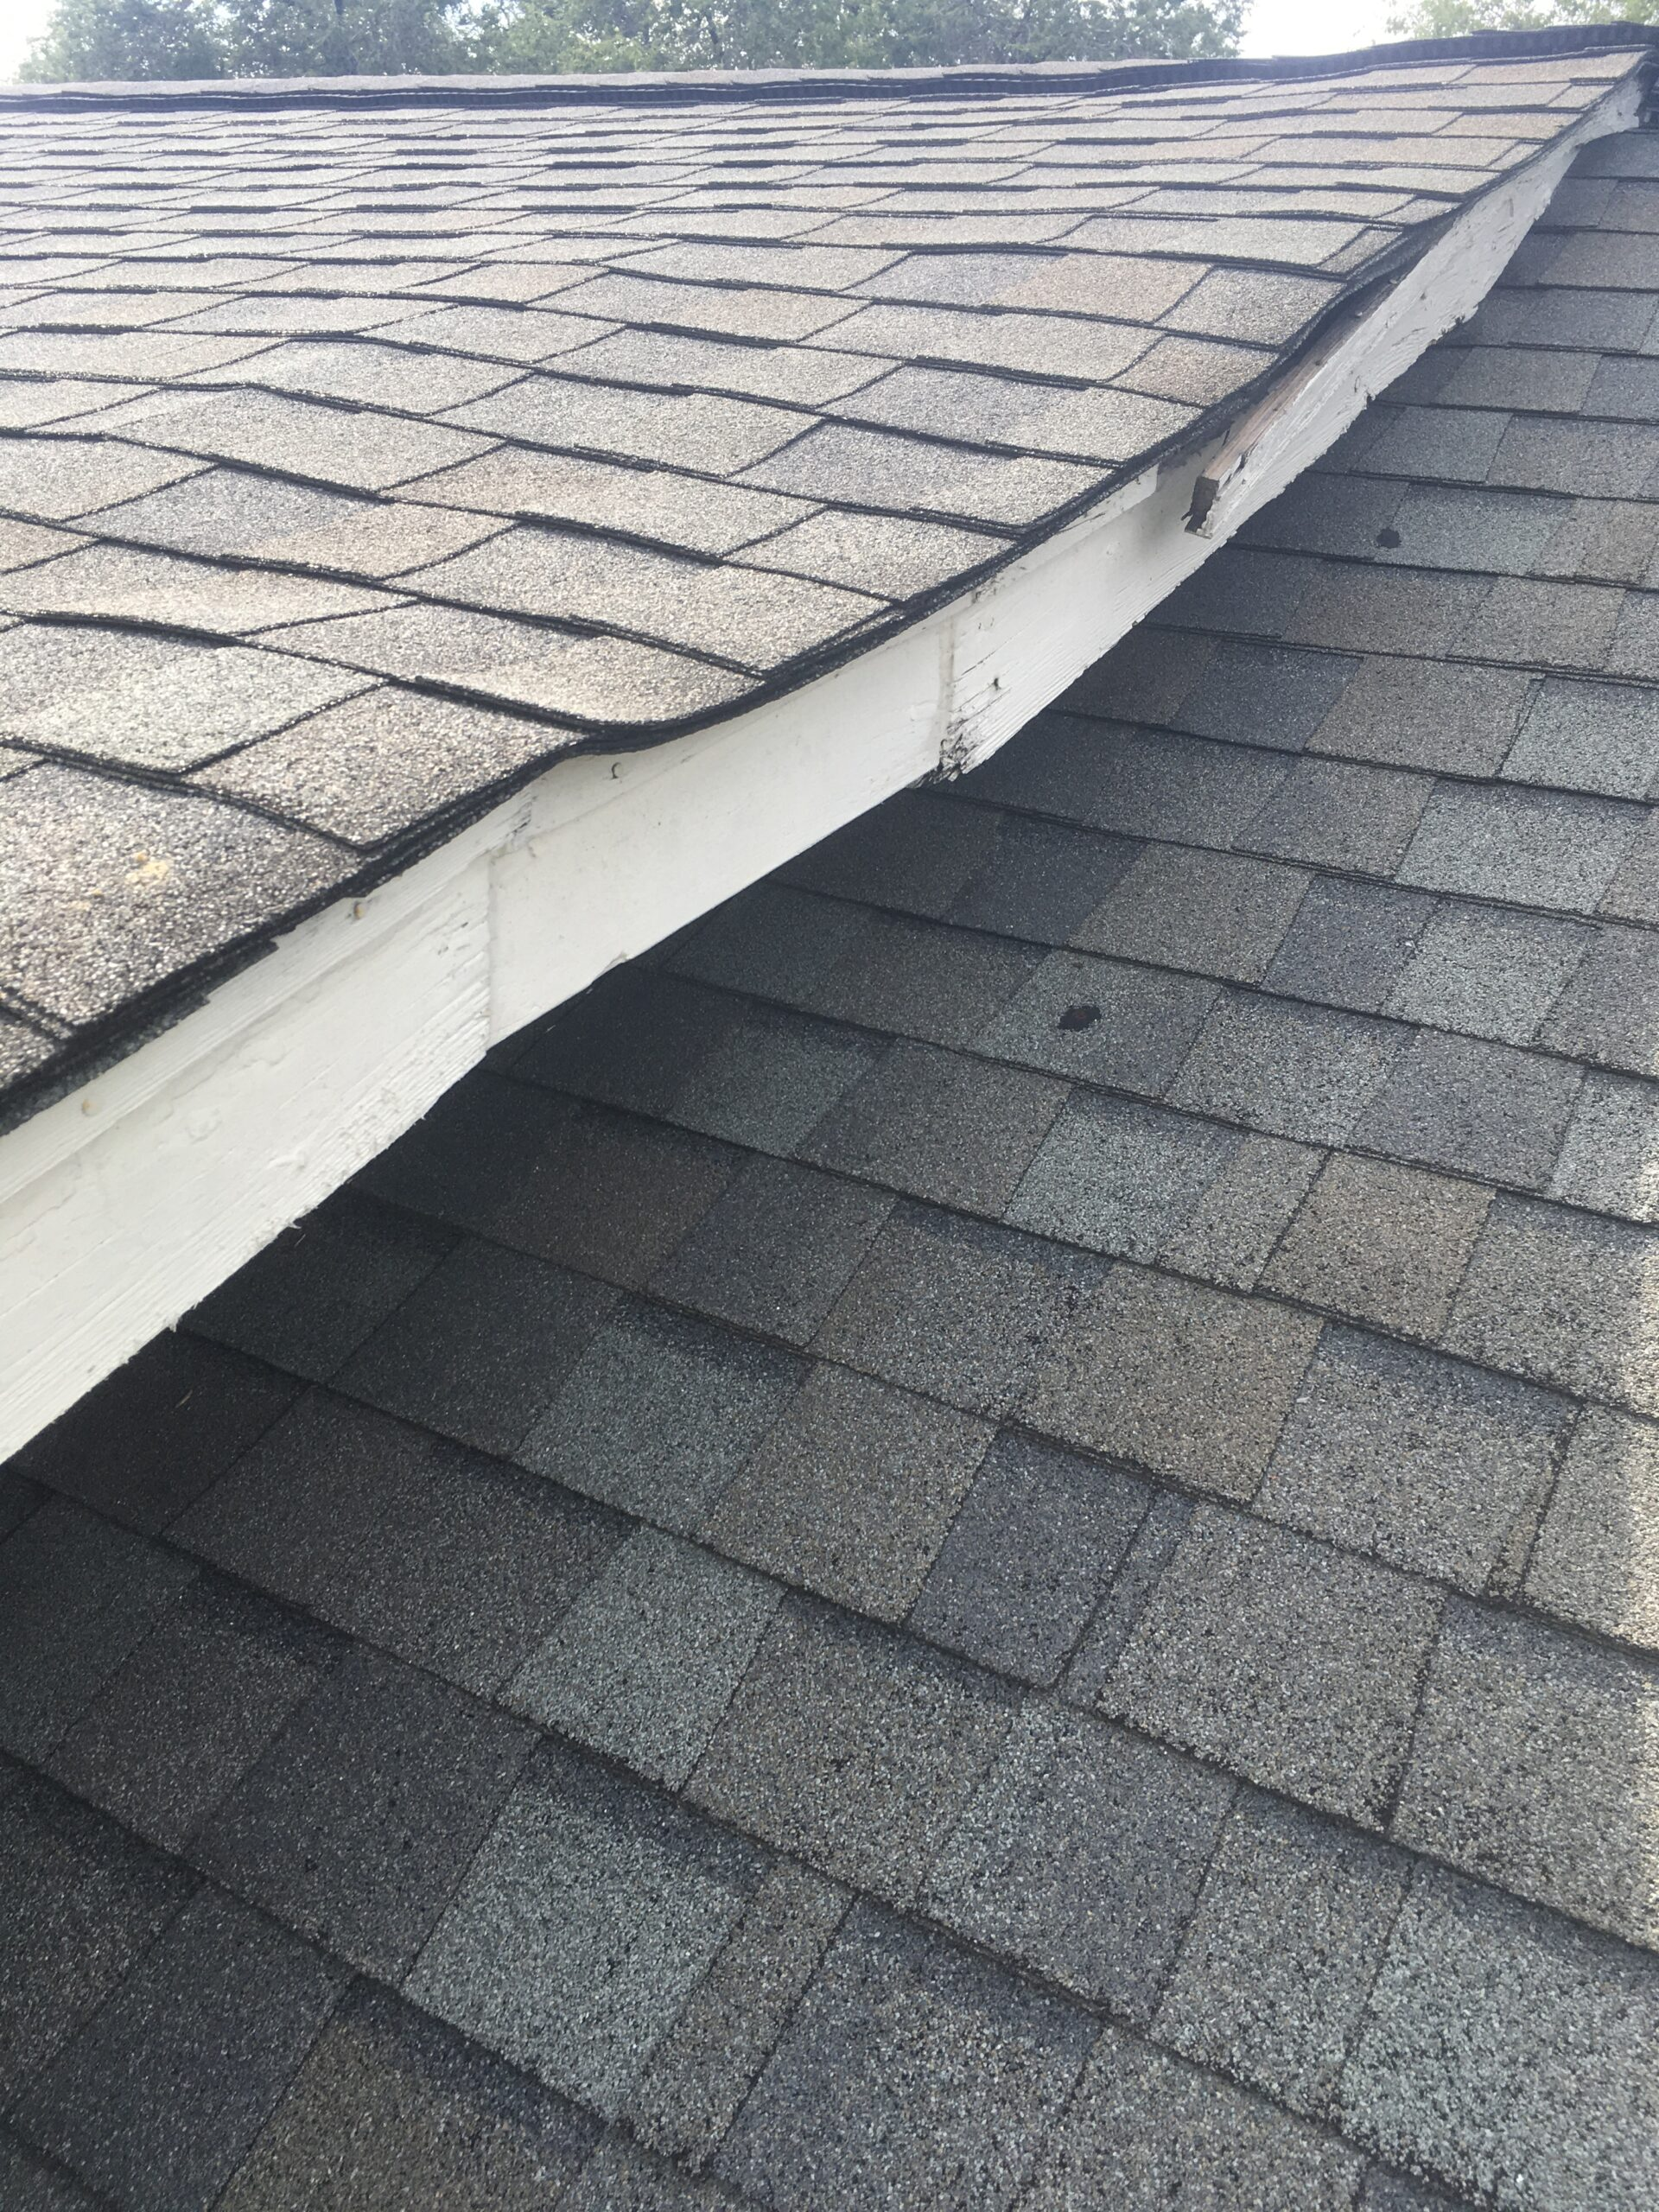 this is a picture of a damaged soffit of a roof that is falling